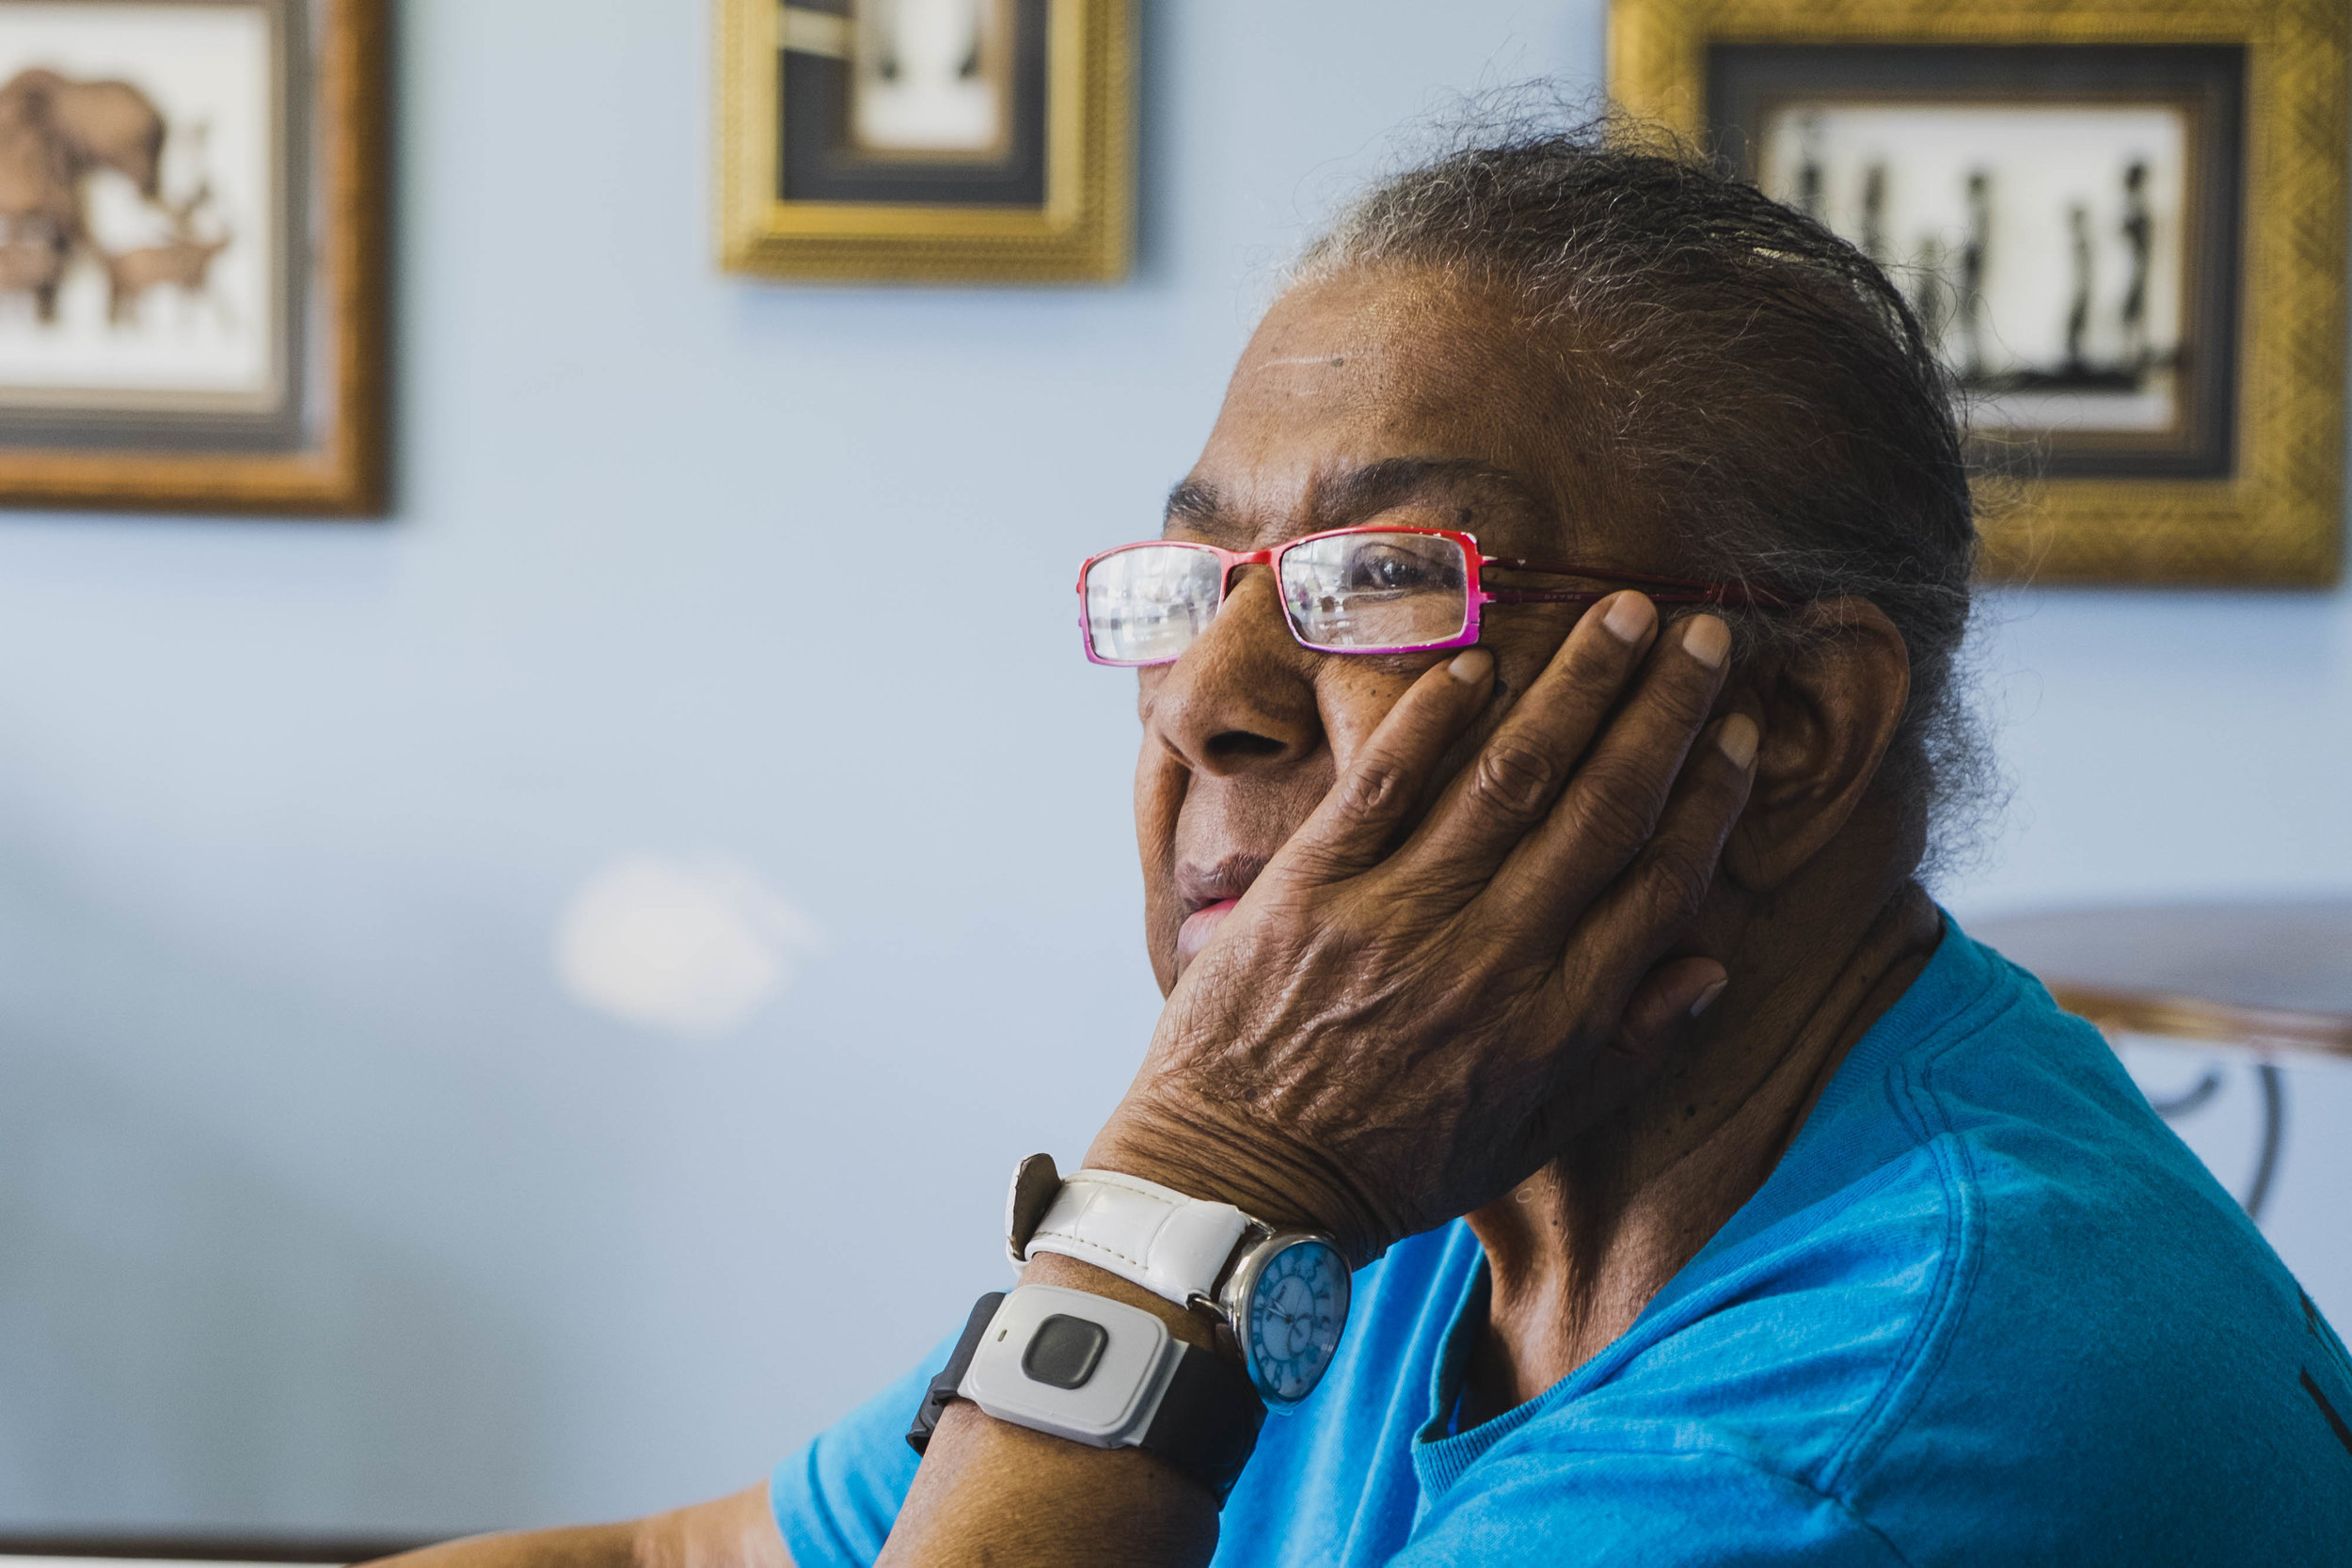 """Della Freeman, 91, lives alone in a senior building in Auburn Gresham. """"I always like to do things for myself,"""" said Freeman, who declined when she was offered a free homemaker to help her with chores. """"I do all of my cleaning, cooking, and going around like that for myself…That's exercise for me,"""" said Freeman. She wears a device that she can press whenever she has an emergency. It sends an alert to staff in the building."""